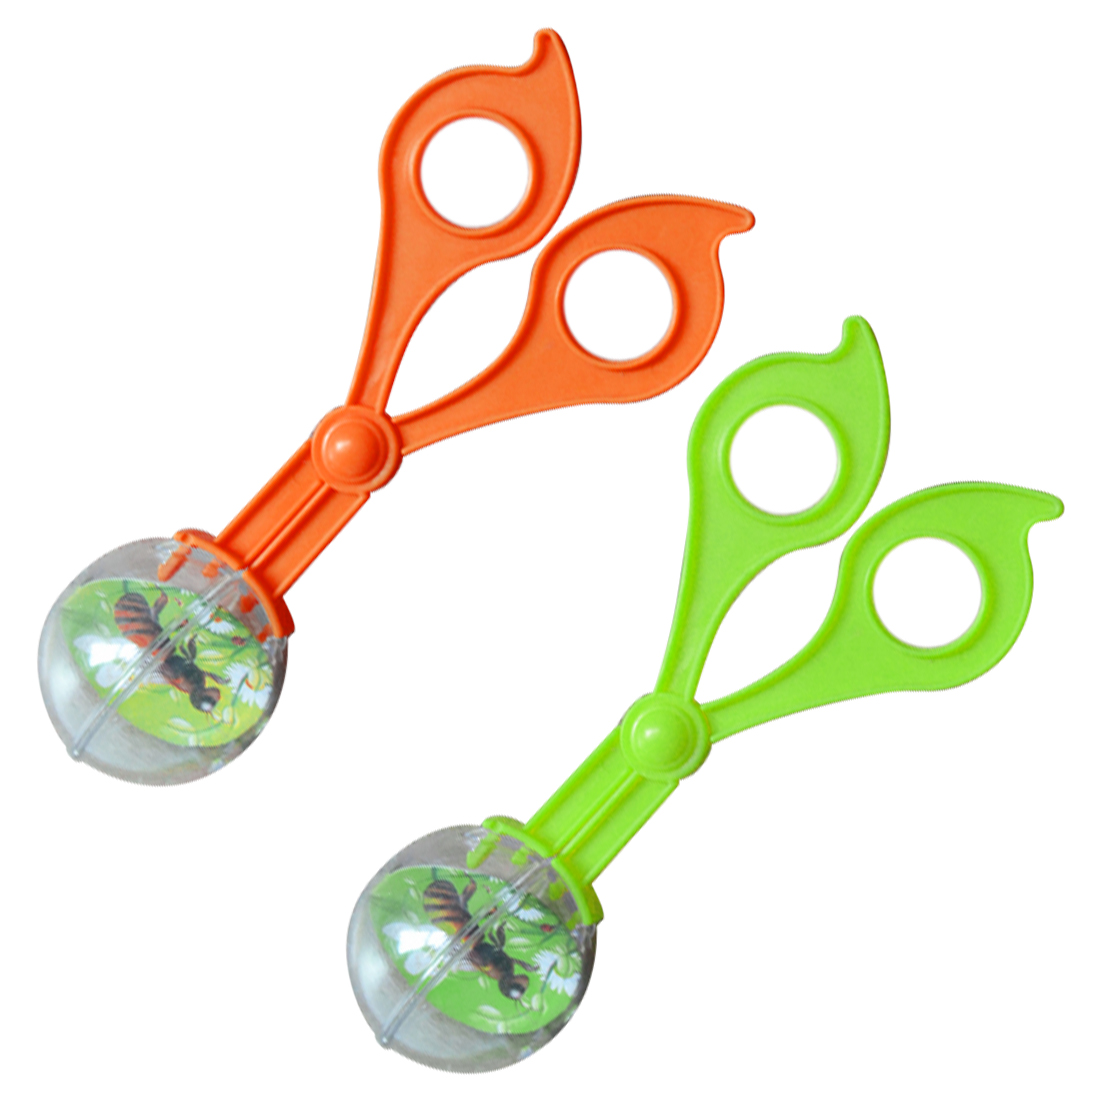 1pc Plastic Bug Insect Catcher Scissors Tongs Tweezers For Kids Children Toy Handy Tool